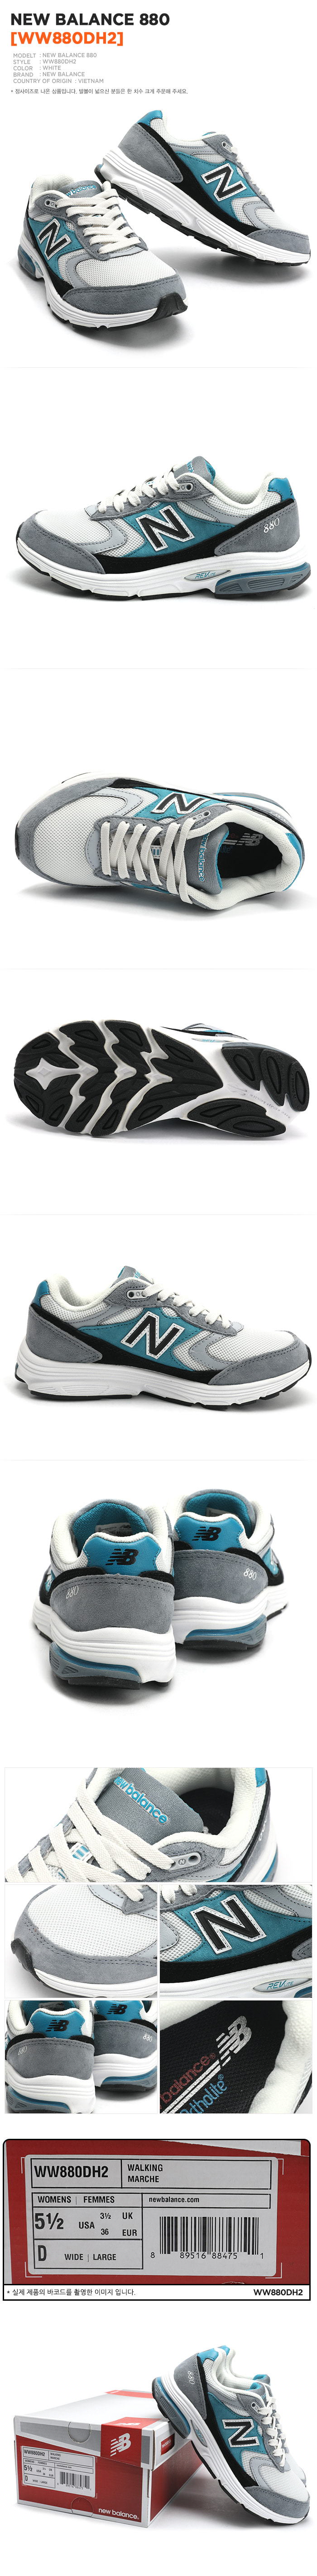 뉴발란스 880 (NEW BALANCE 880) [WW880DH2]